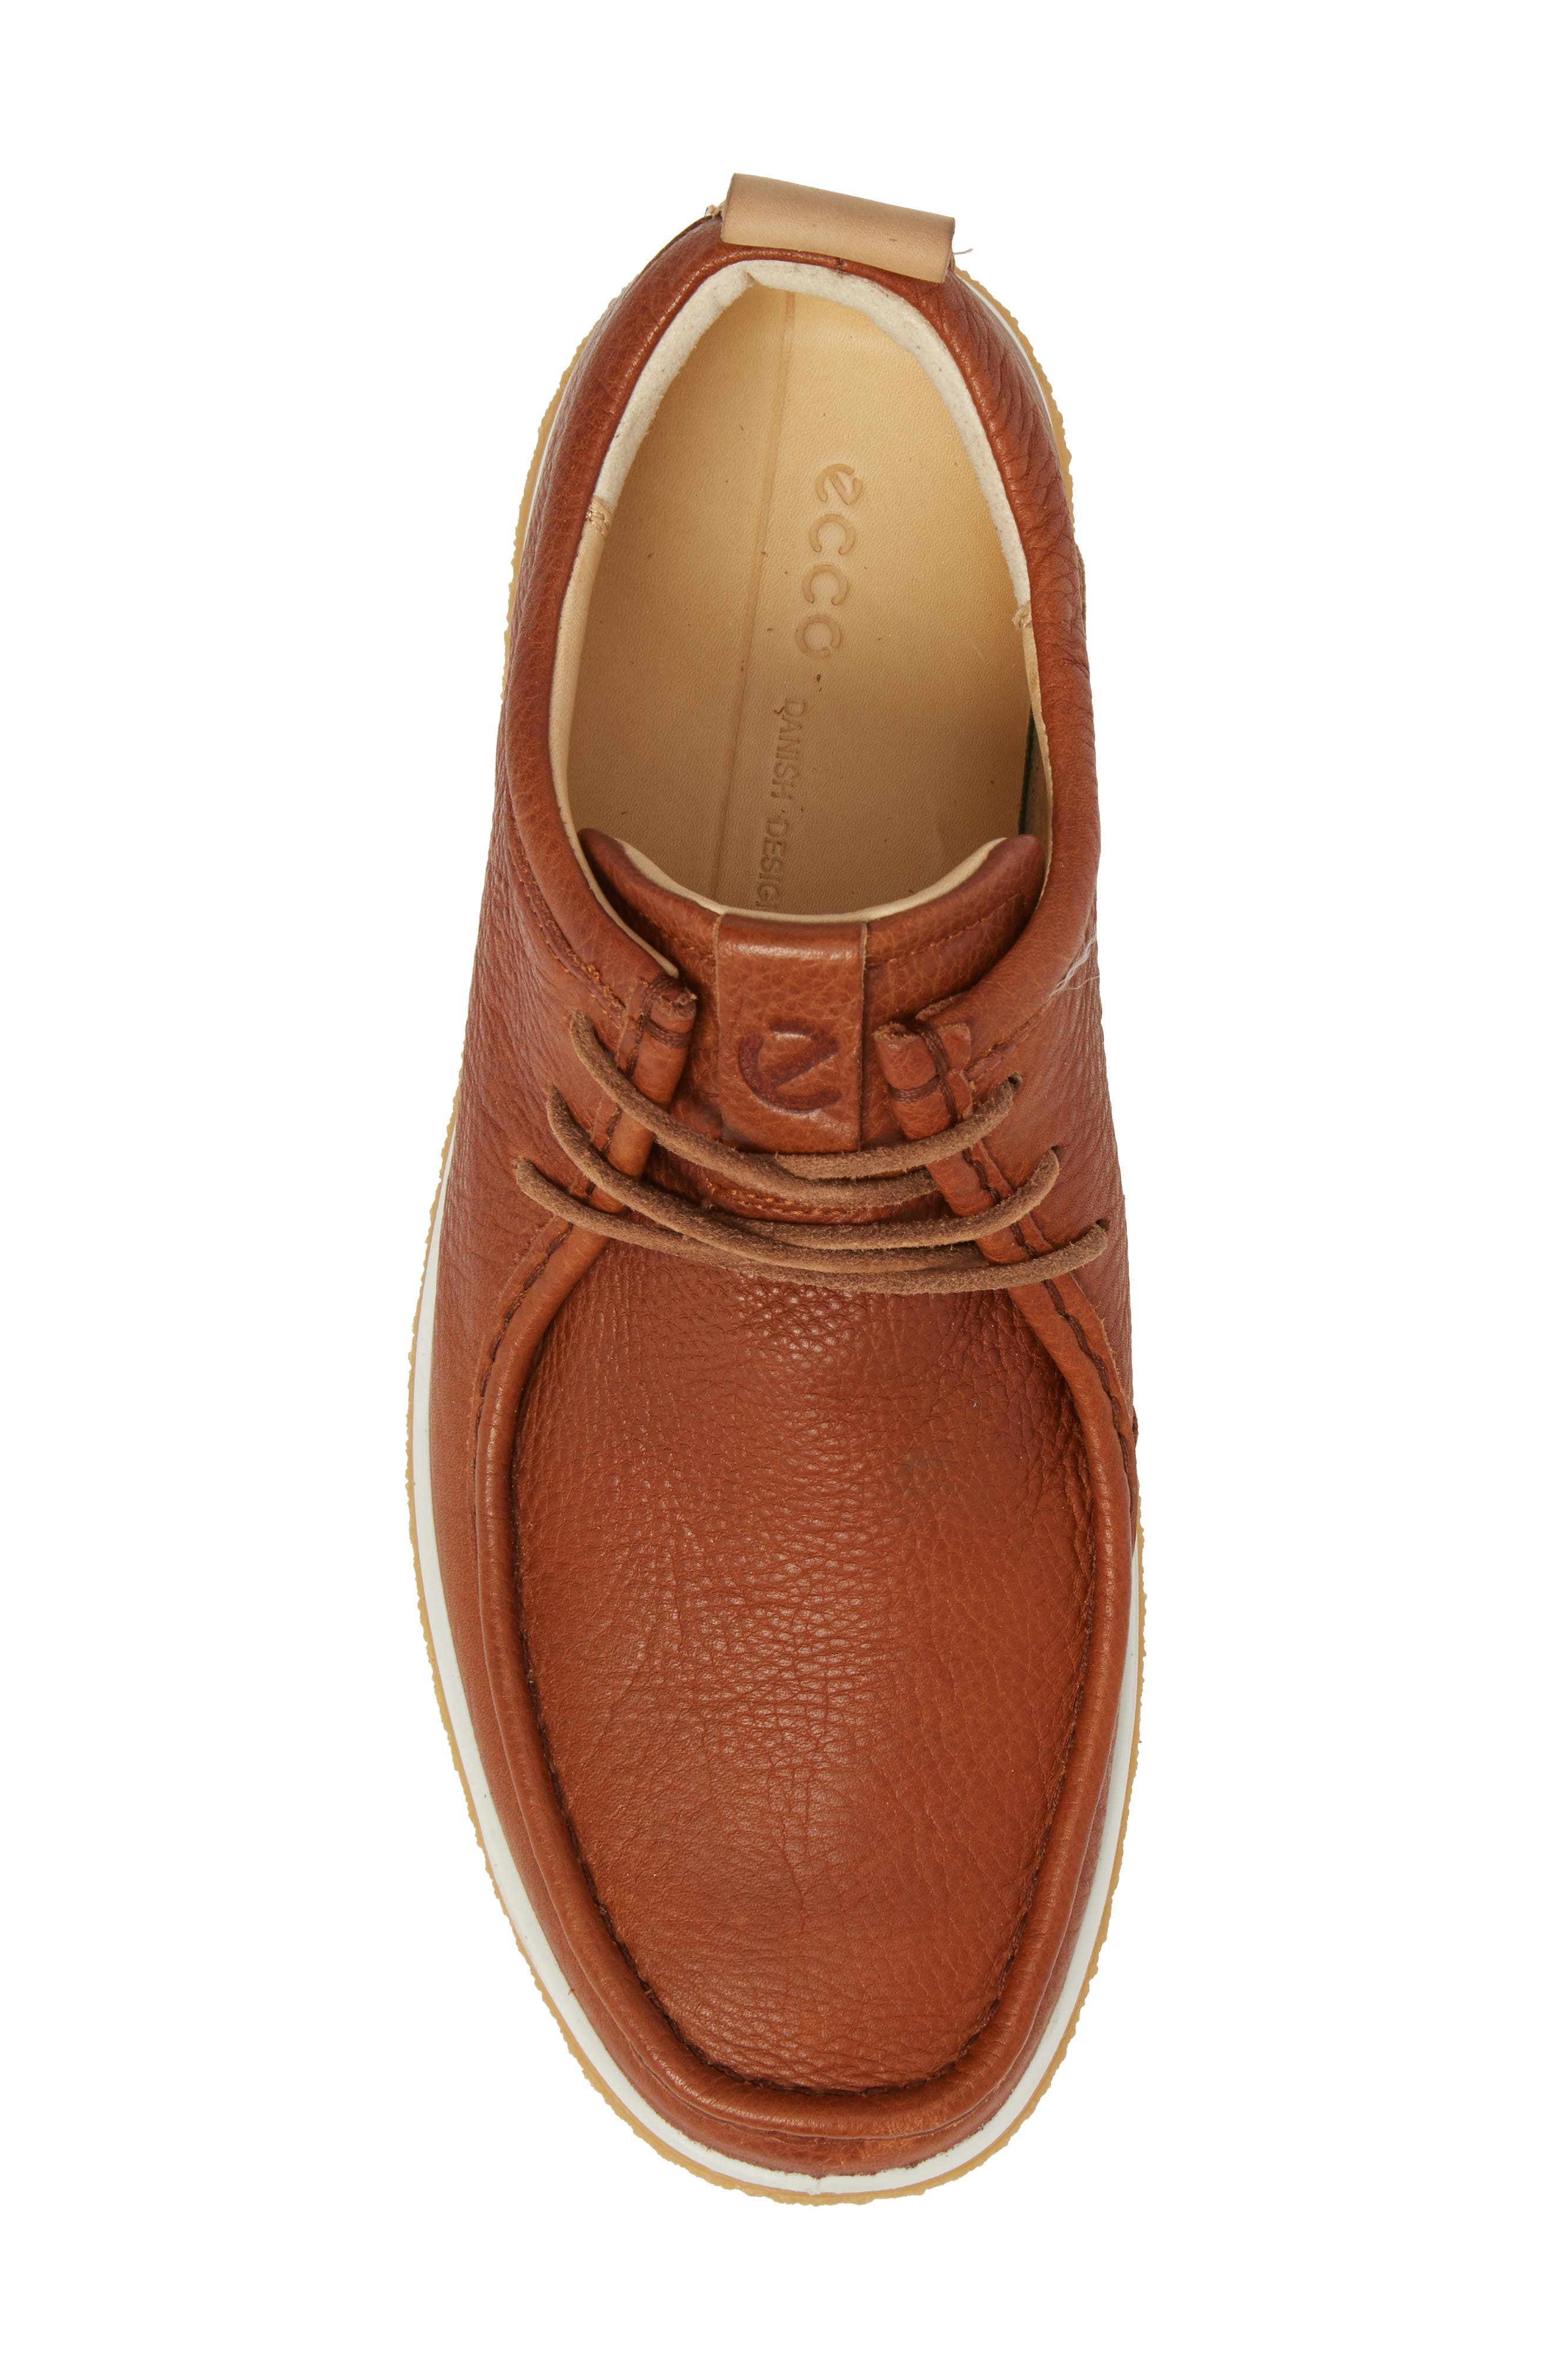 Crepetray Moc Toe Lace-Up,                             Alternate thumbnail 5, color,                             Lion Leather